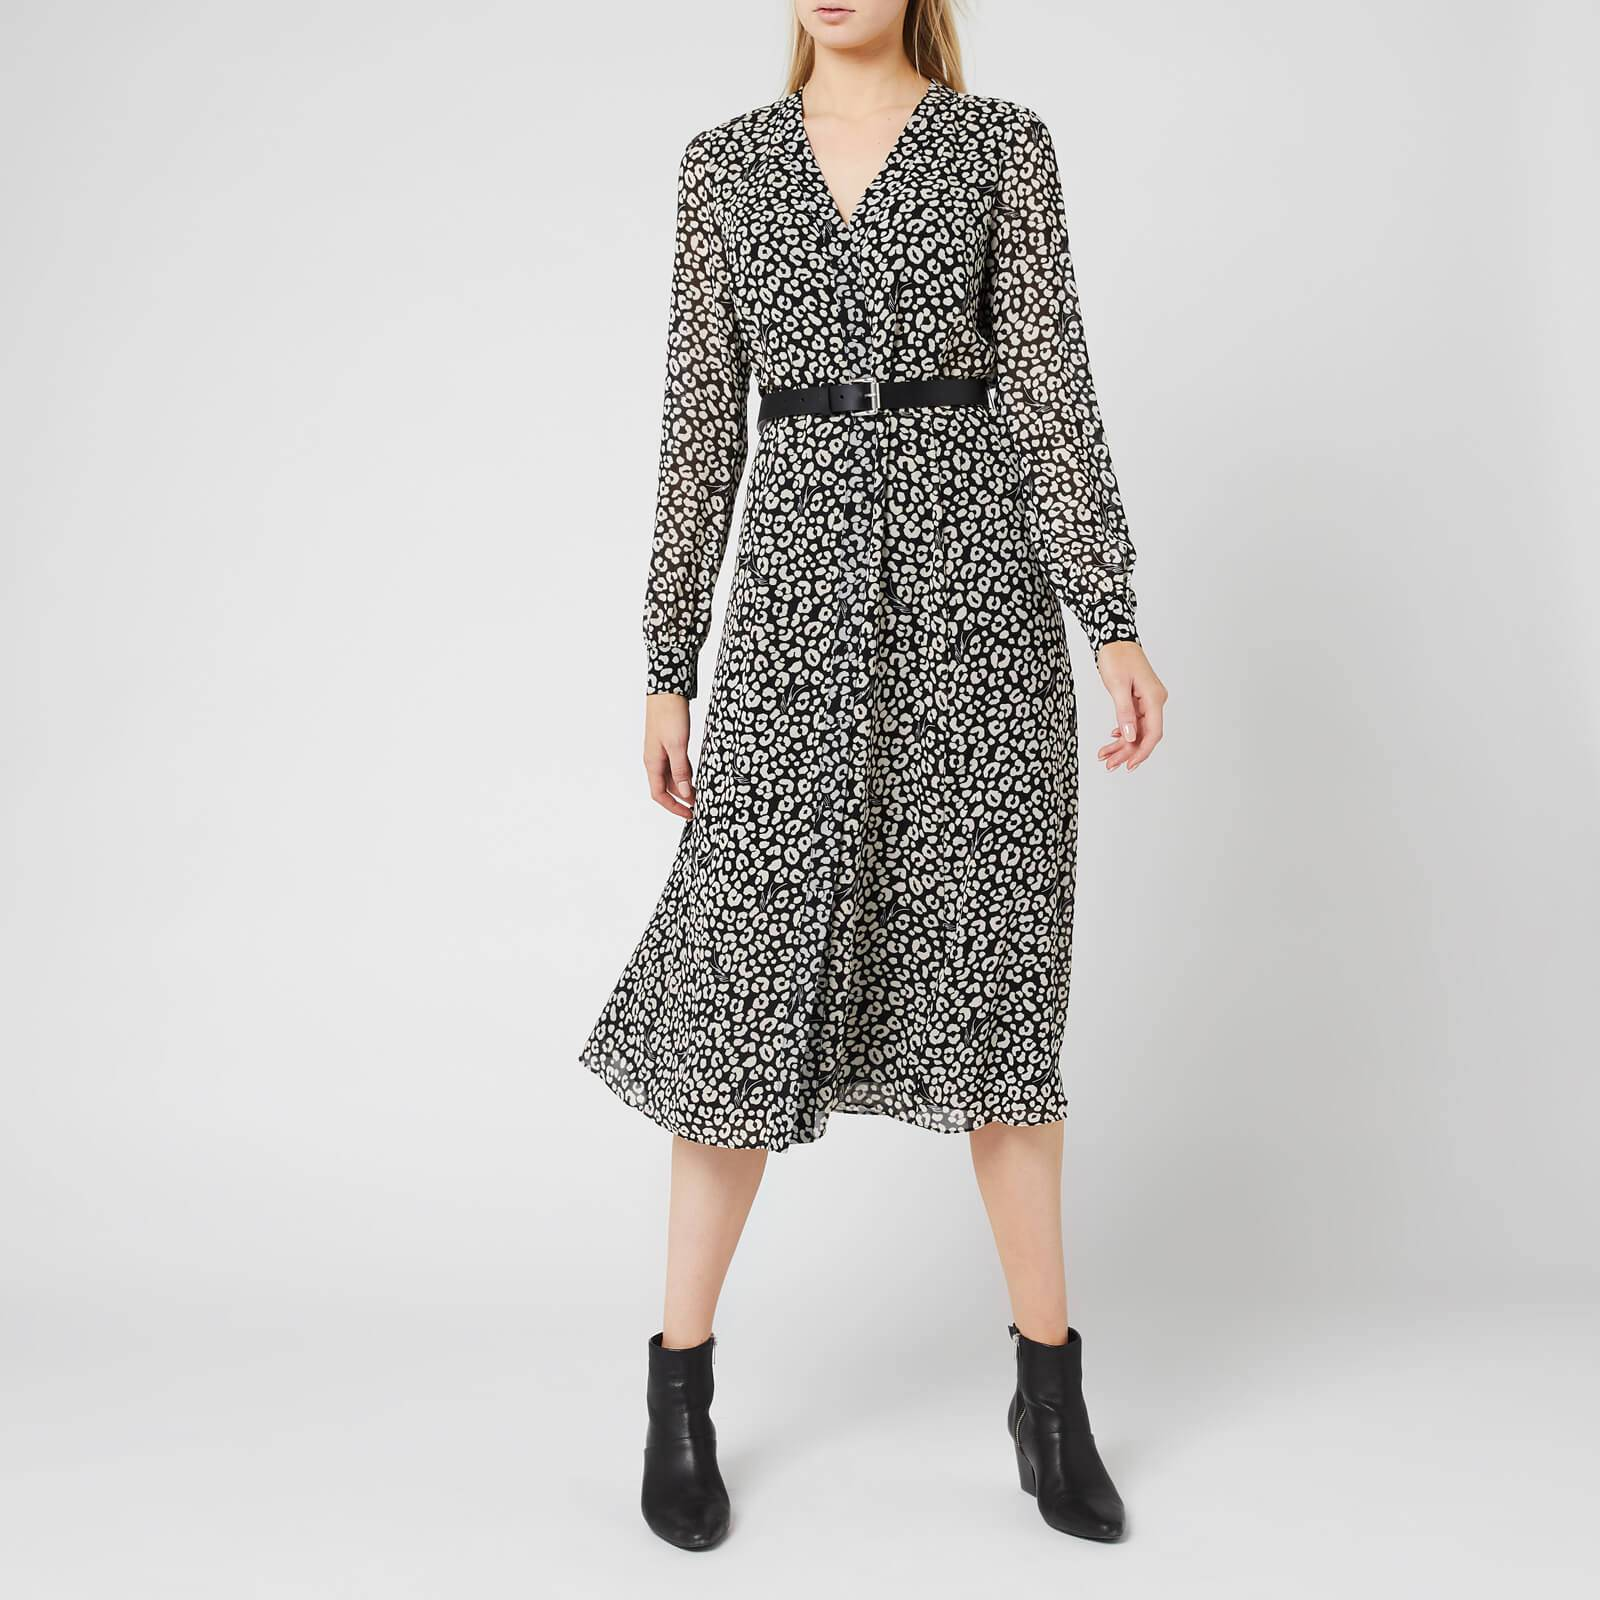 MICHAEL MICHAEL KORS Women's Shirt Dress - Black/Bone - S